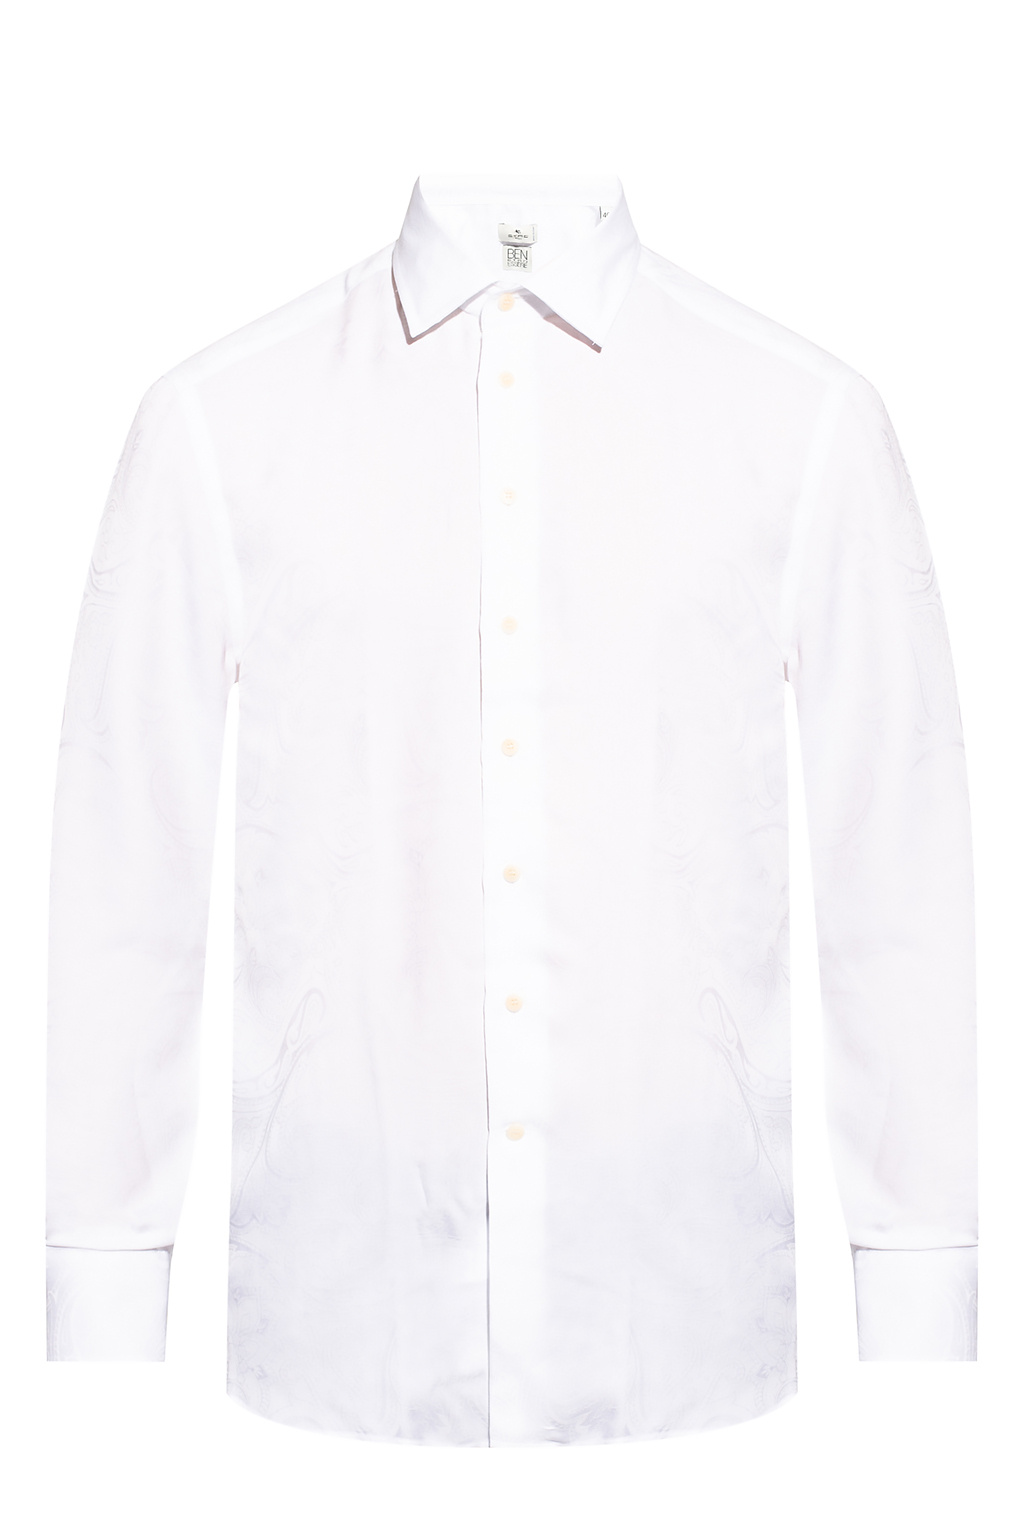 Etro Shirt BenEtroEssere collection